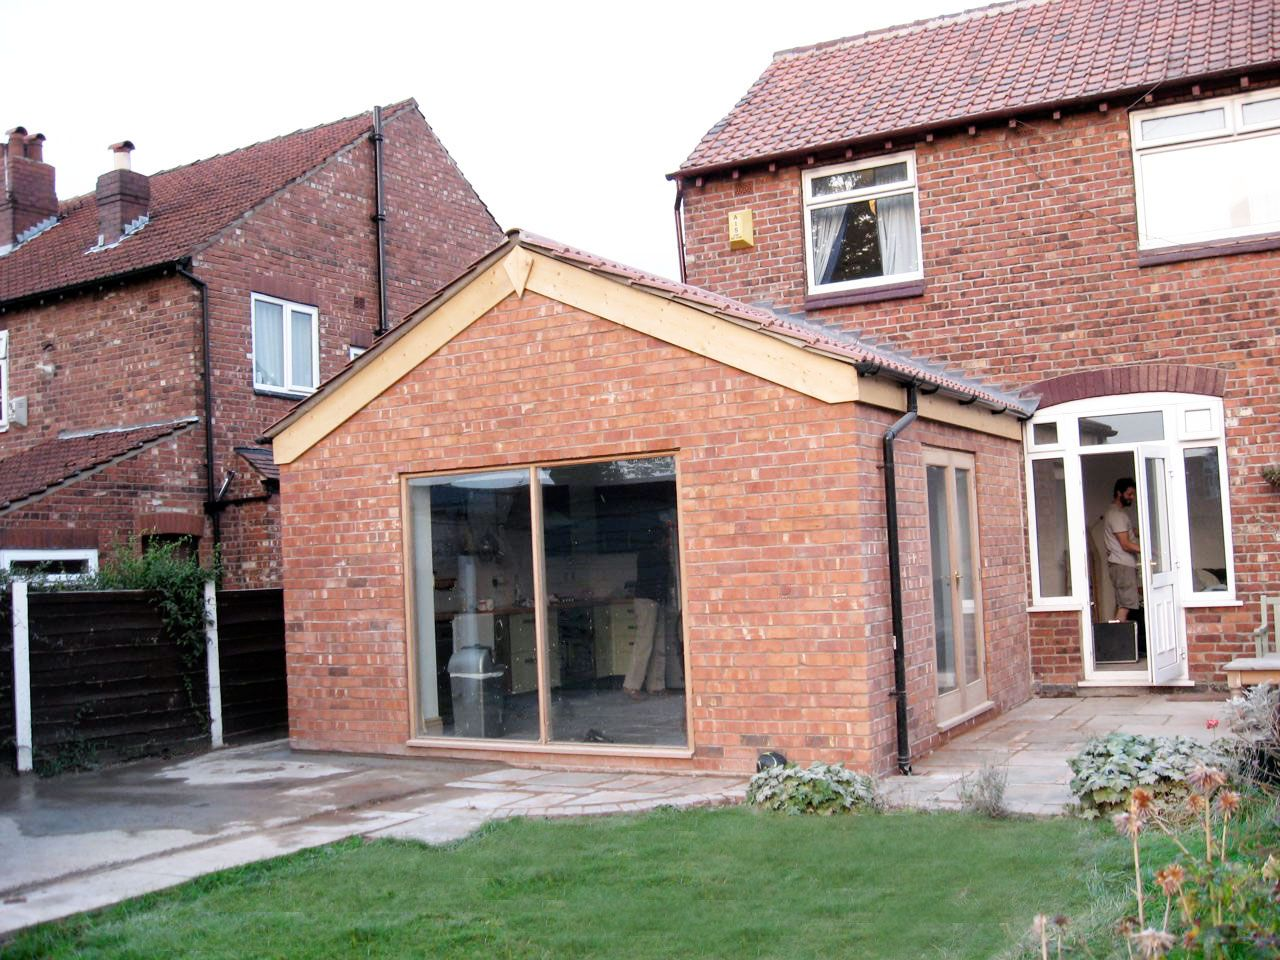 House Extensions Design Ideas House Extension Design Garden Room Extensions House Extensions